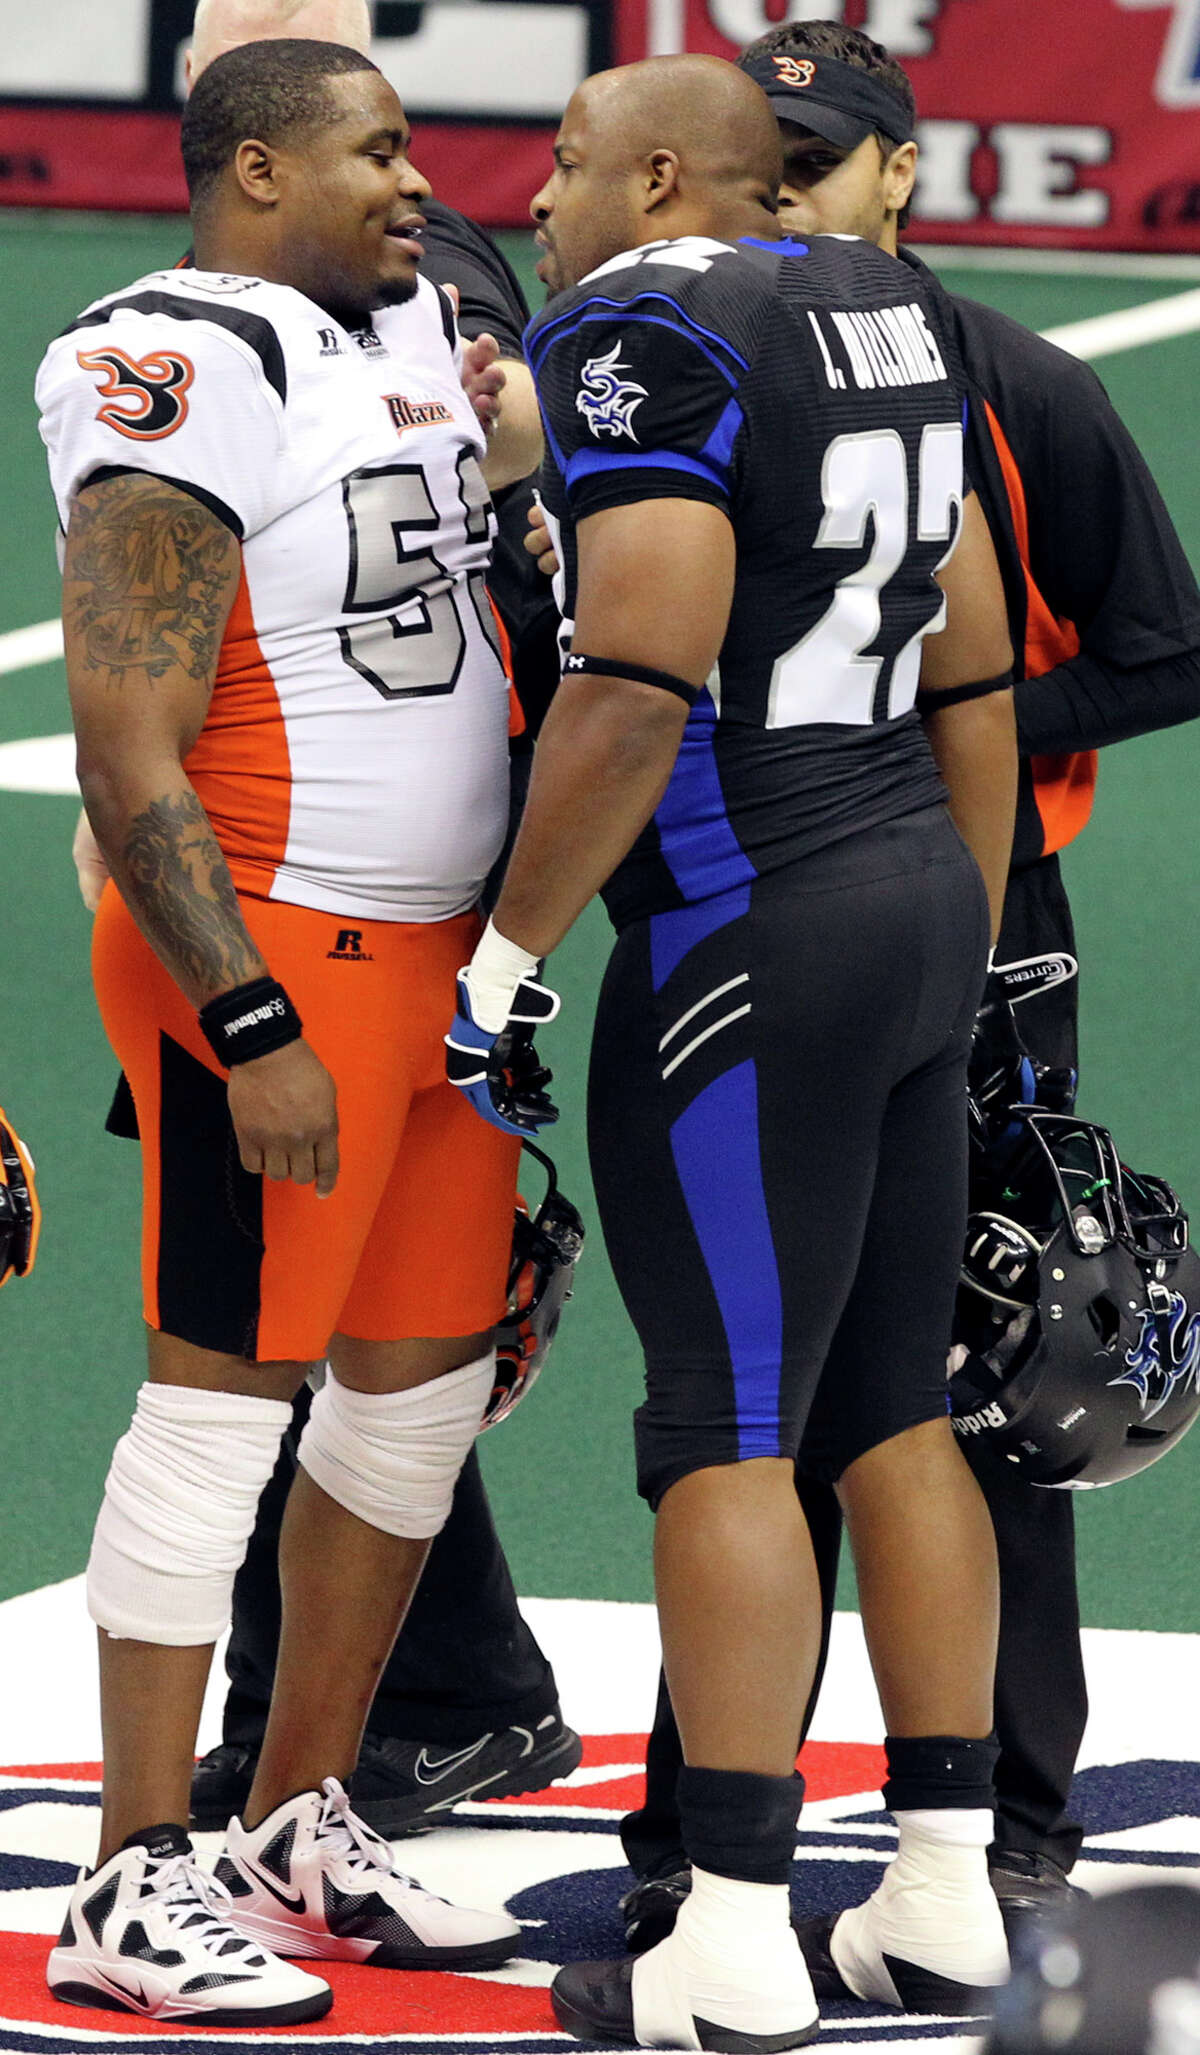 SPORTS Talons lineman John Williams has a disagreement with Mike Lewis before the game starts a the San Antonio Talons beat the Utah Blaze 54-48 at the Alamodome on March 10, 2012 Tom Reel/ San Antonio Express-News